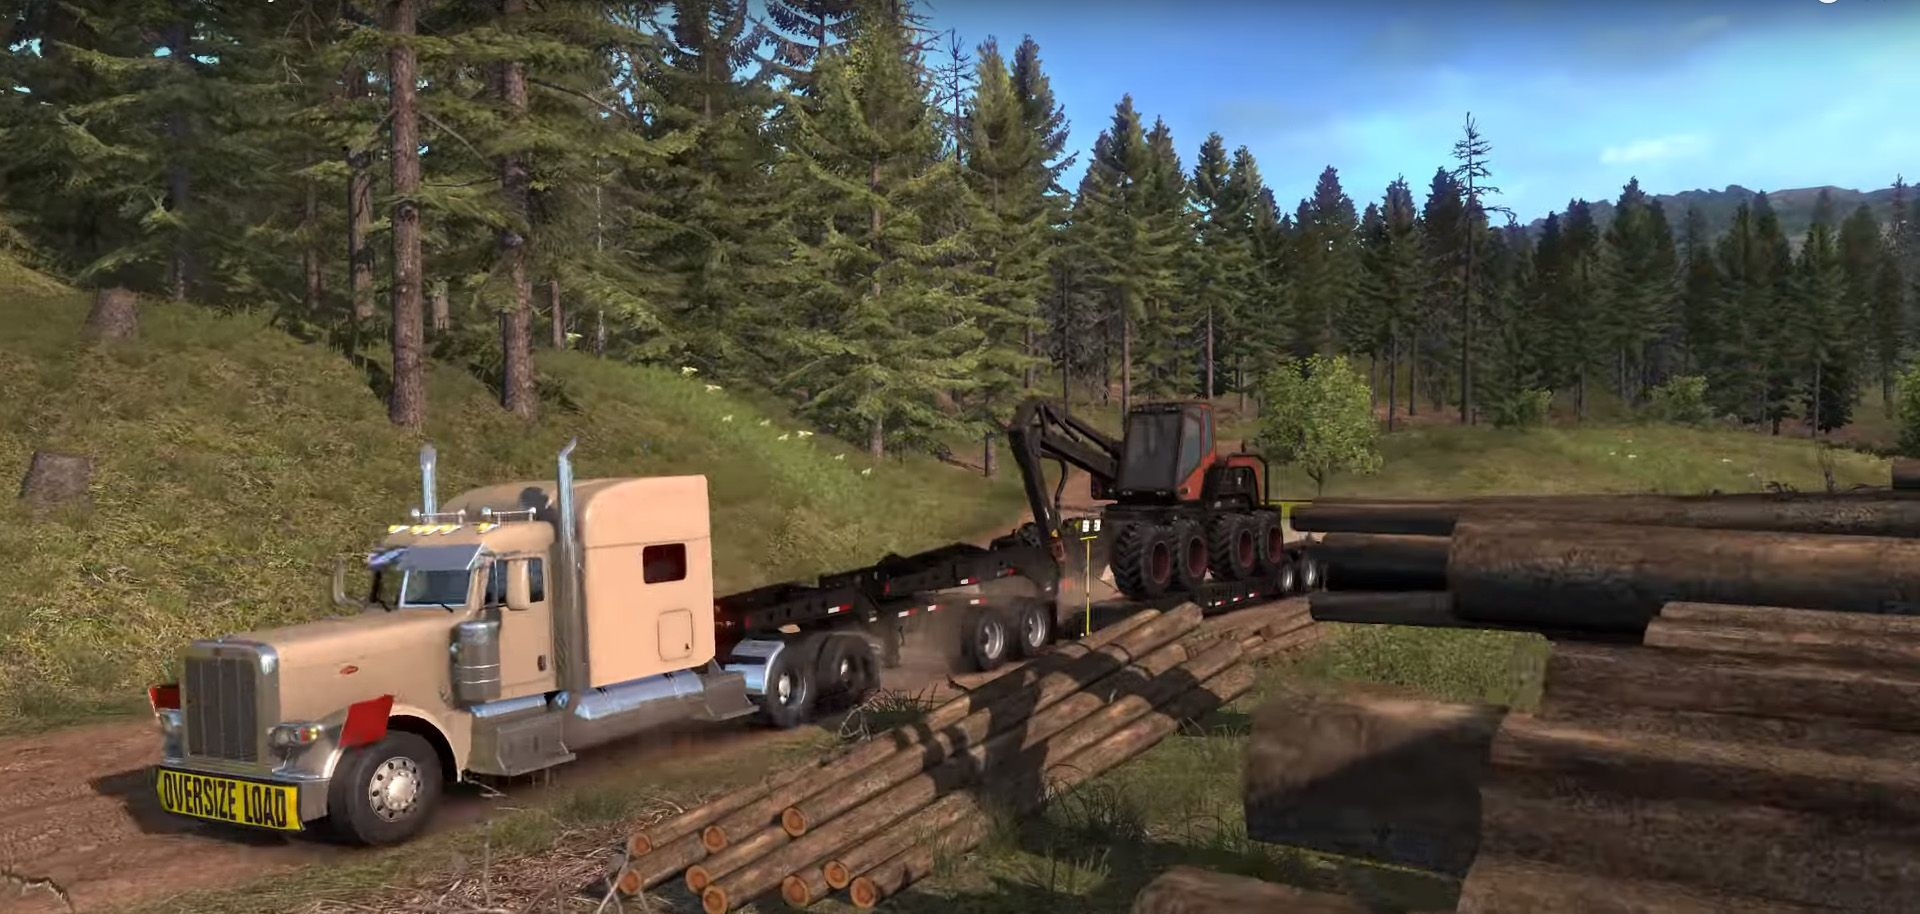 Состоялся релиз дополнений American Truck Simulator: Washington и Forest Machinery DLC